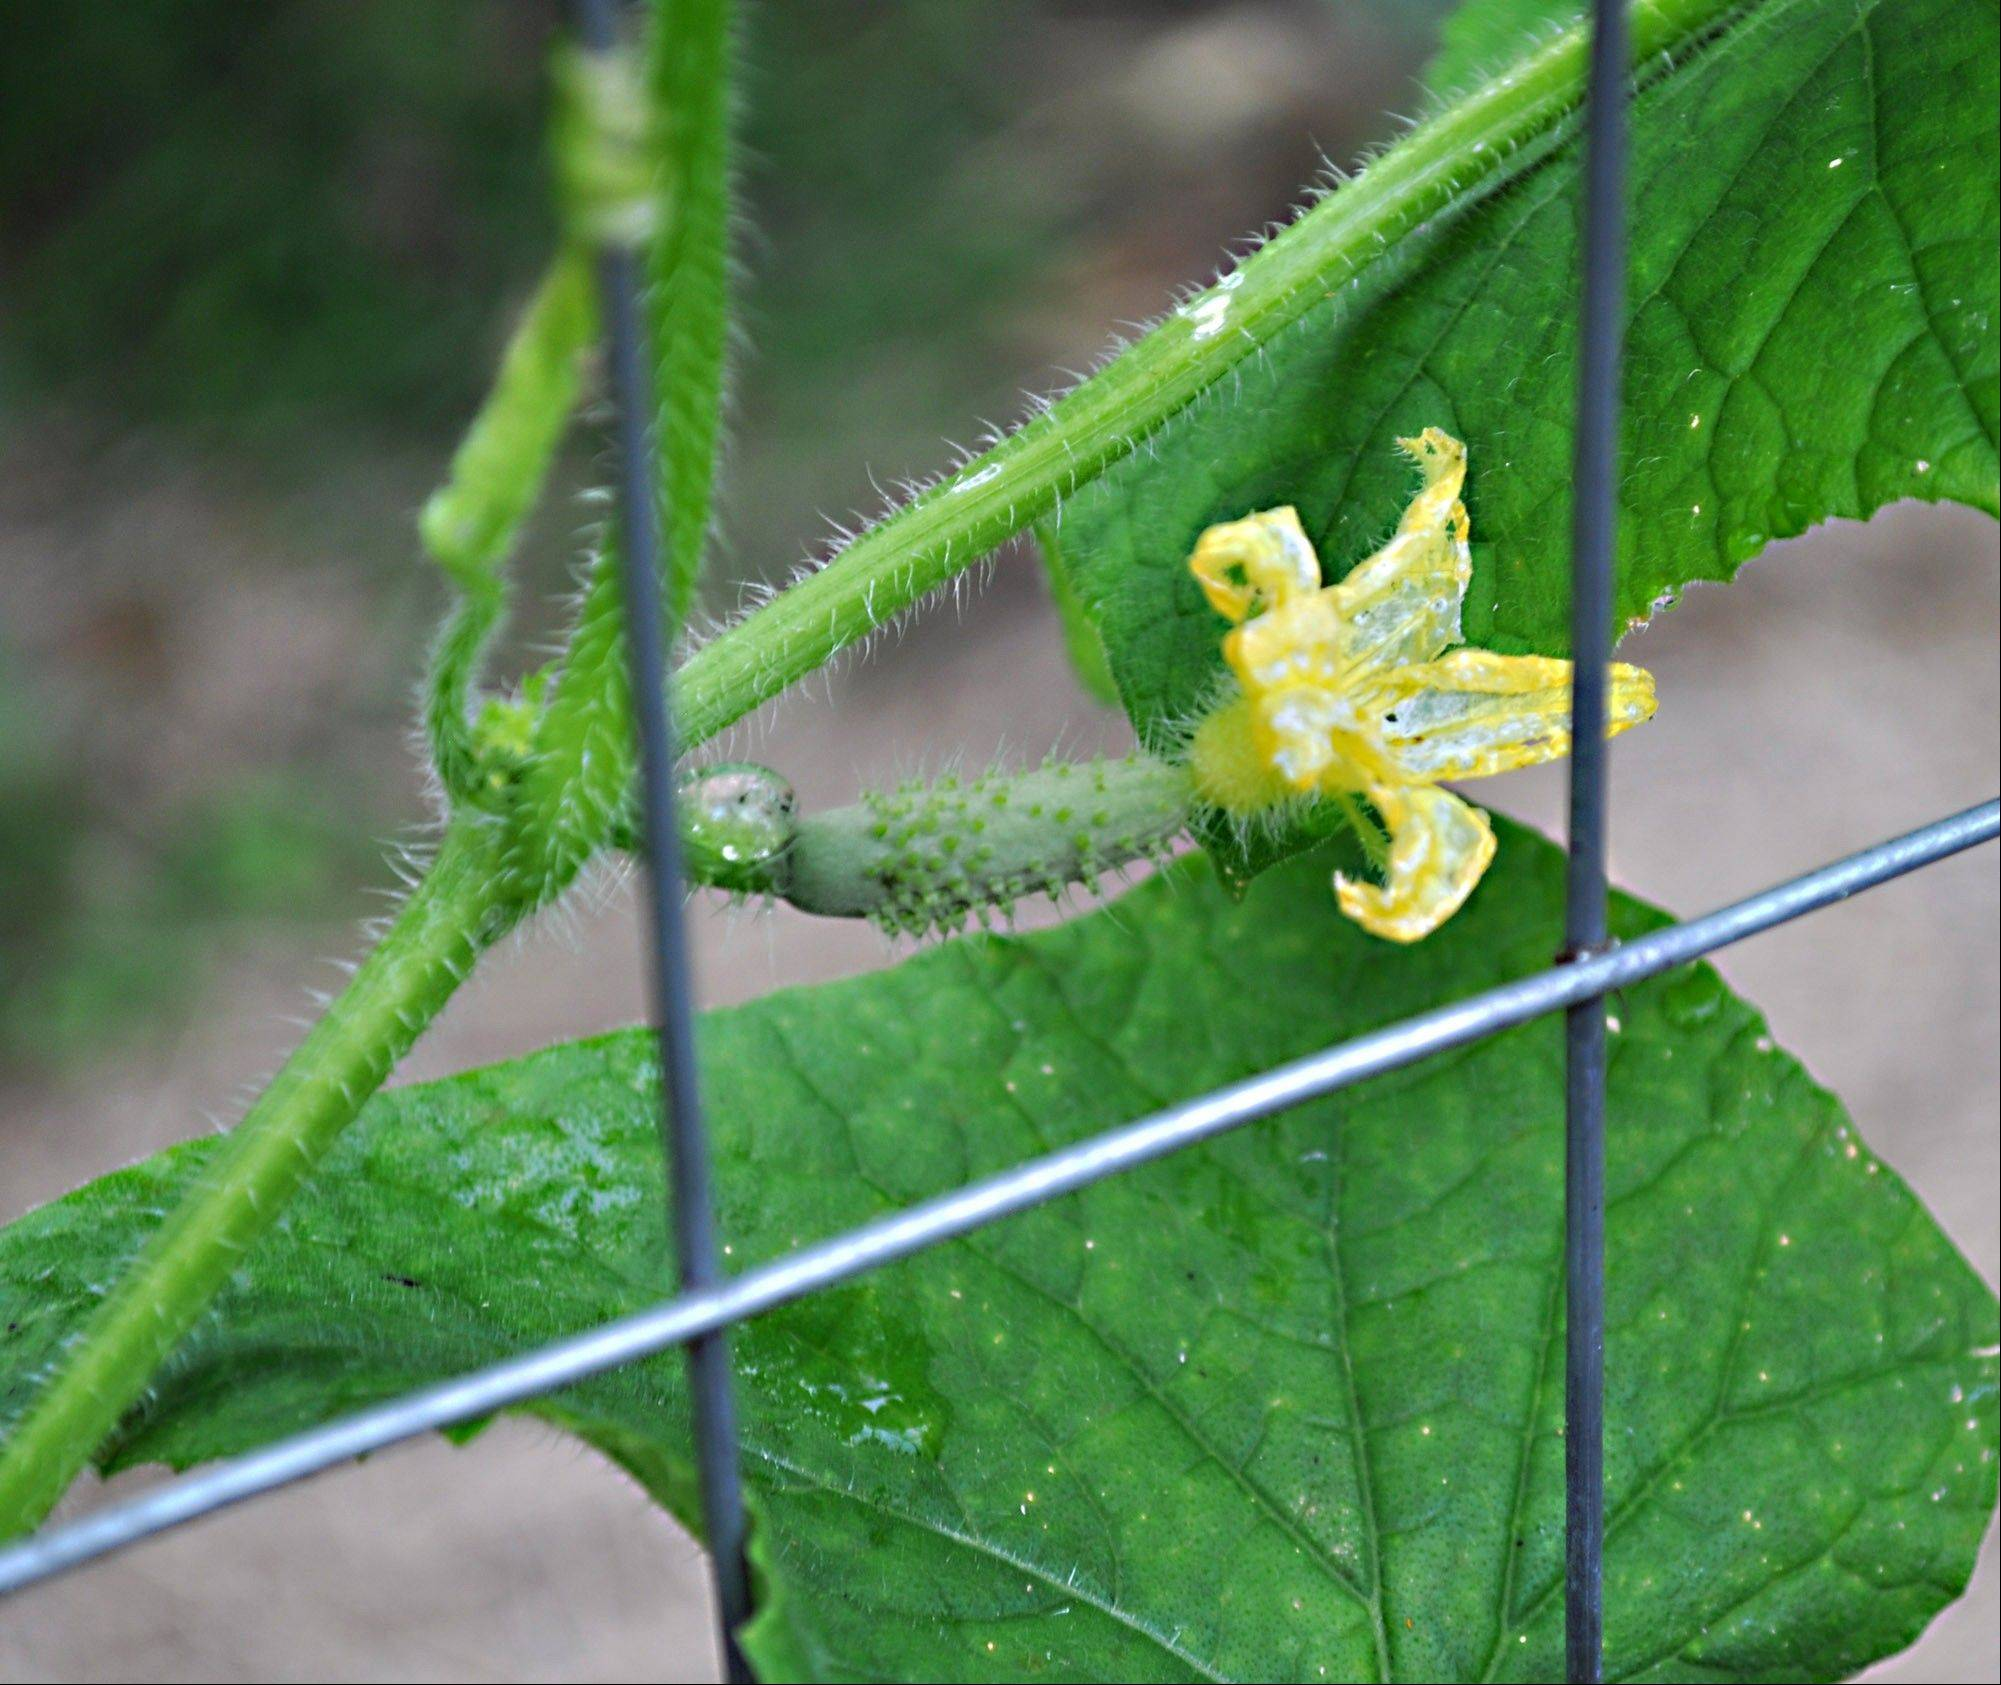 Seeds can be collected from a cucumber.